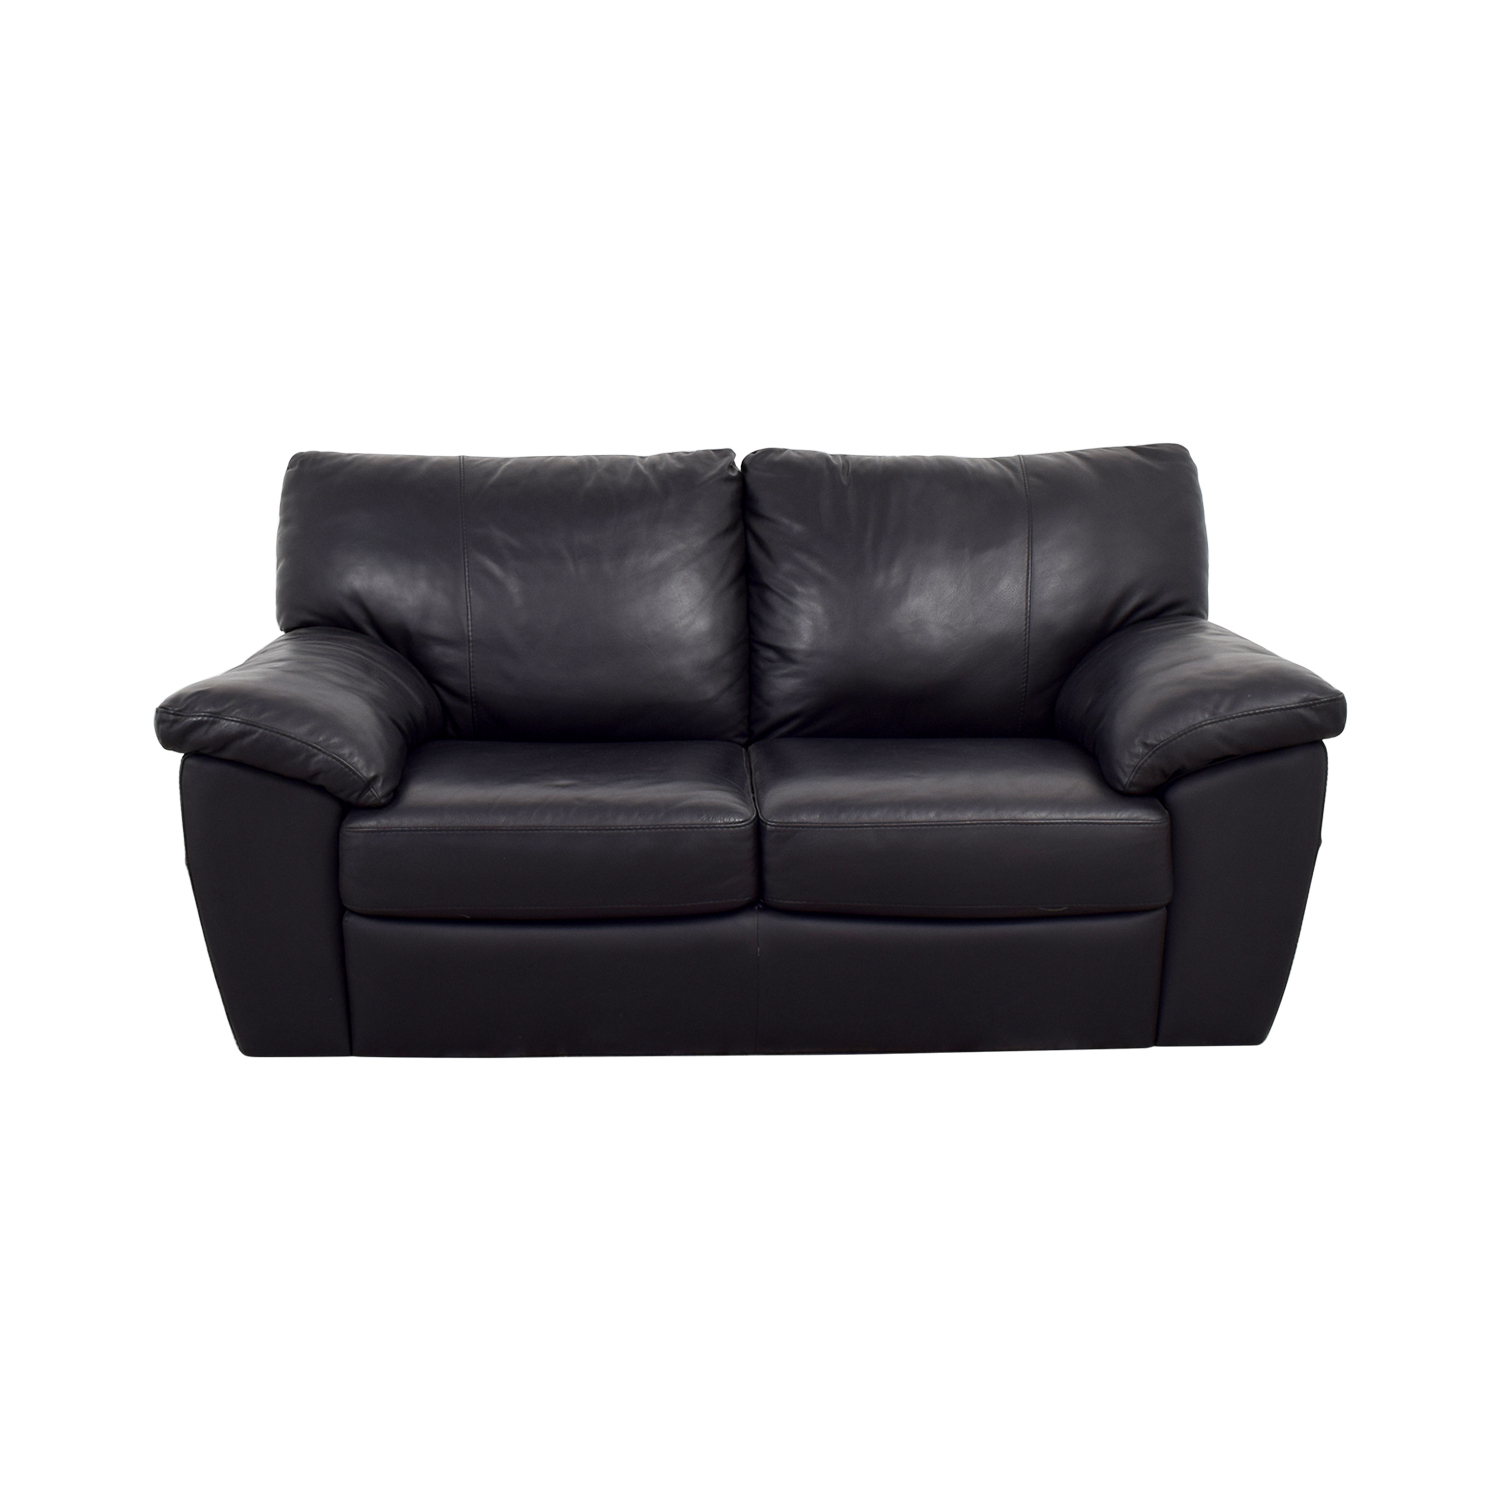 IKEA IKEA Black Leather Two-Cushion Couch discount